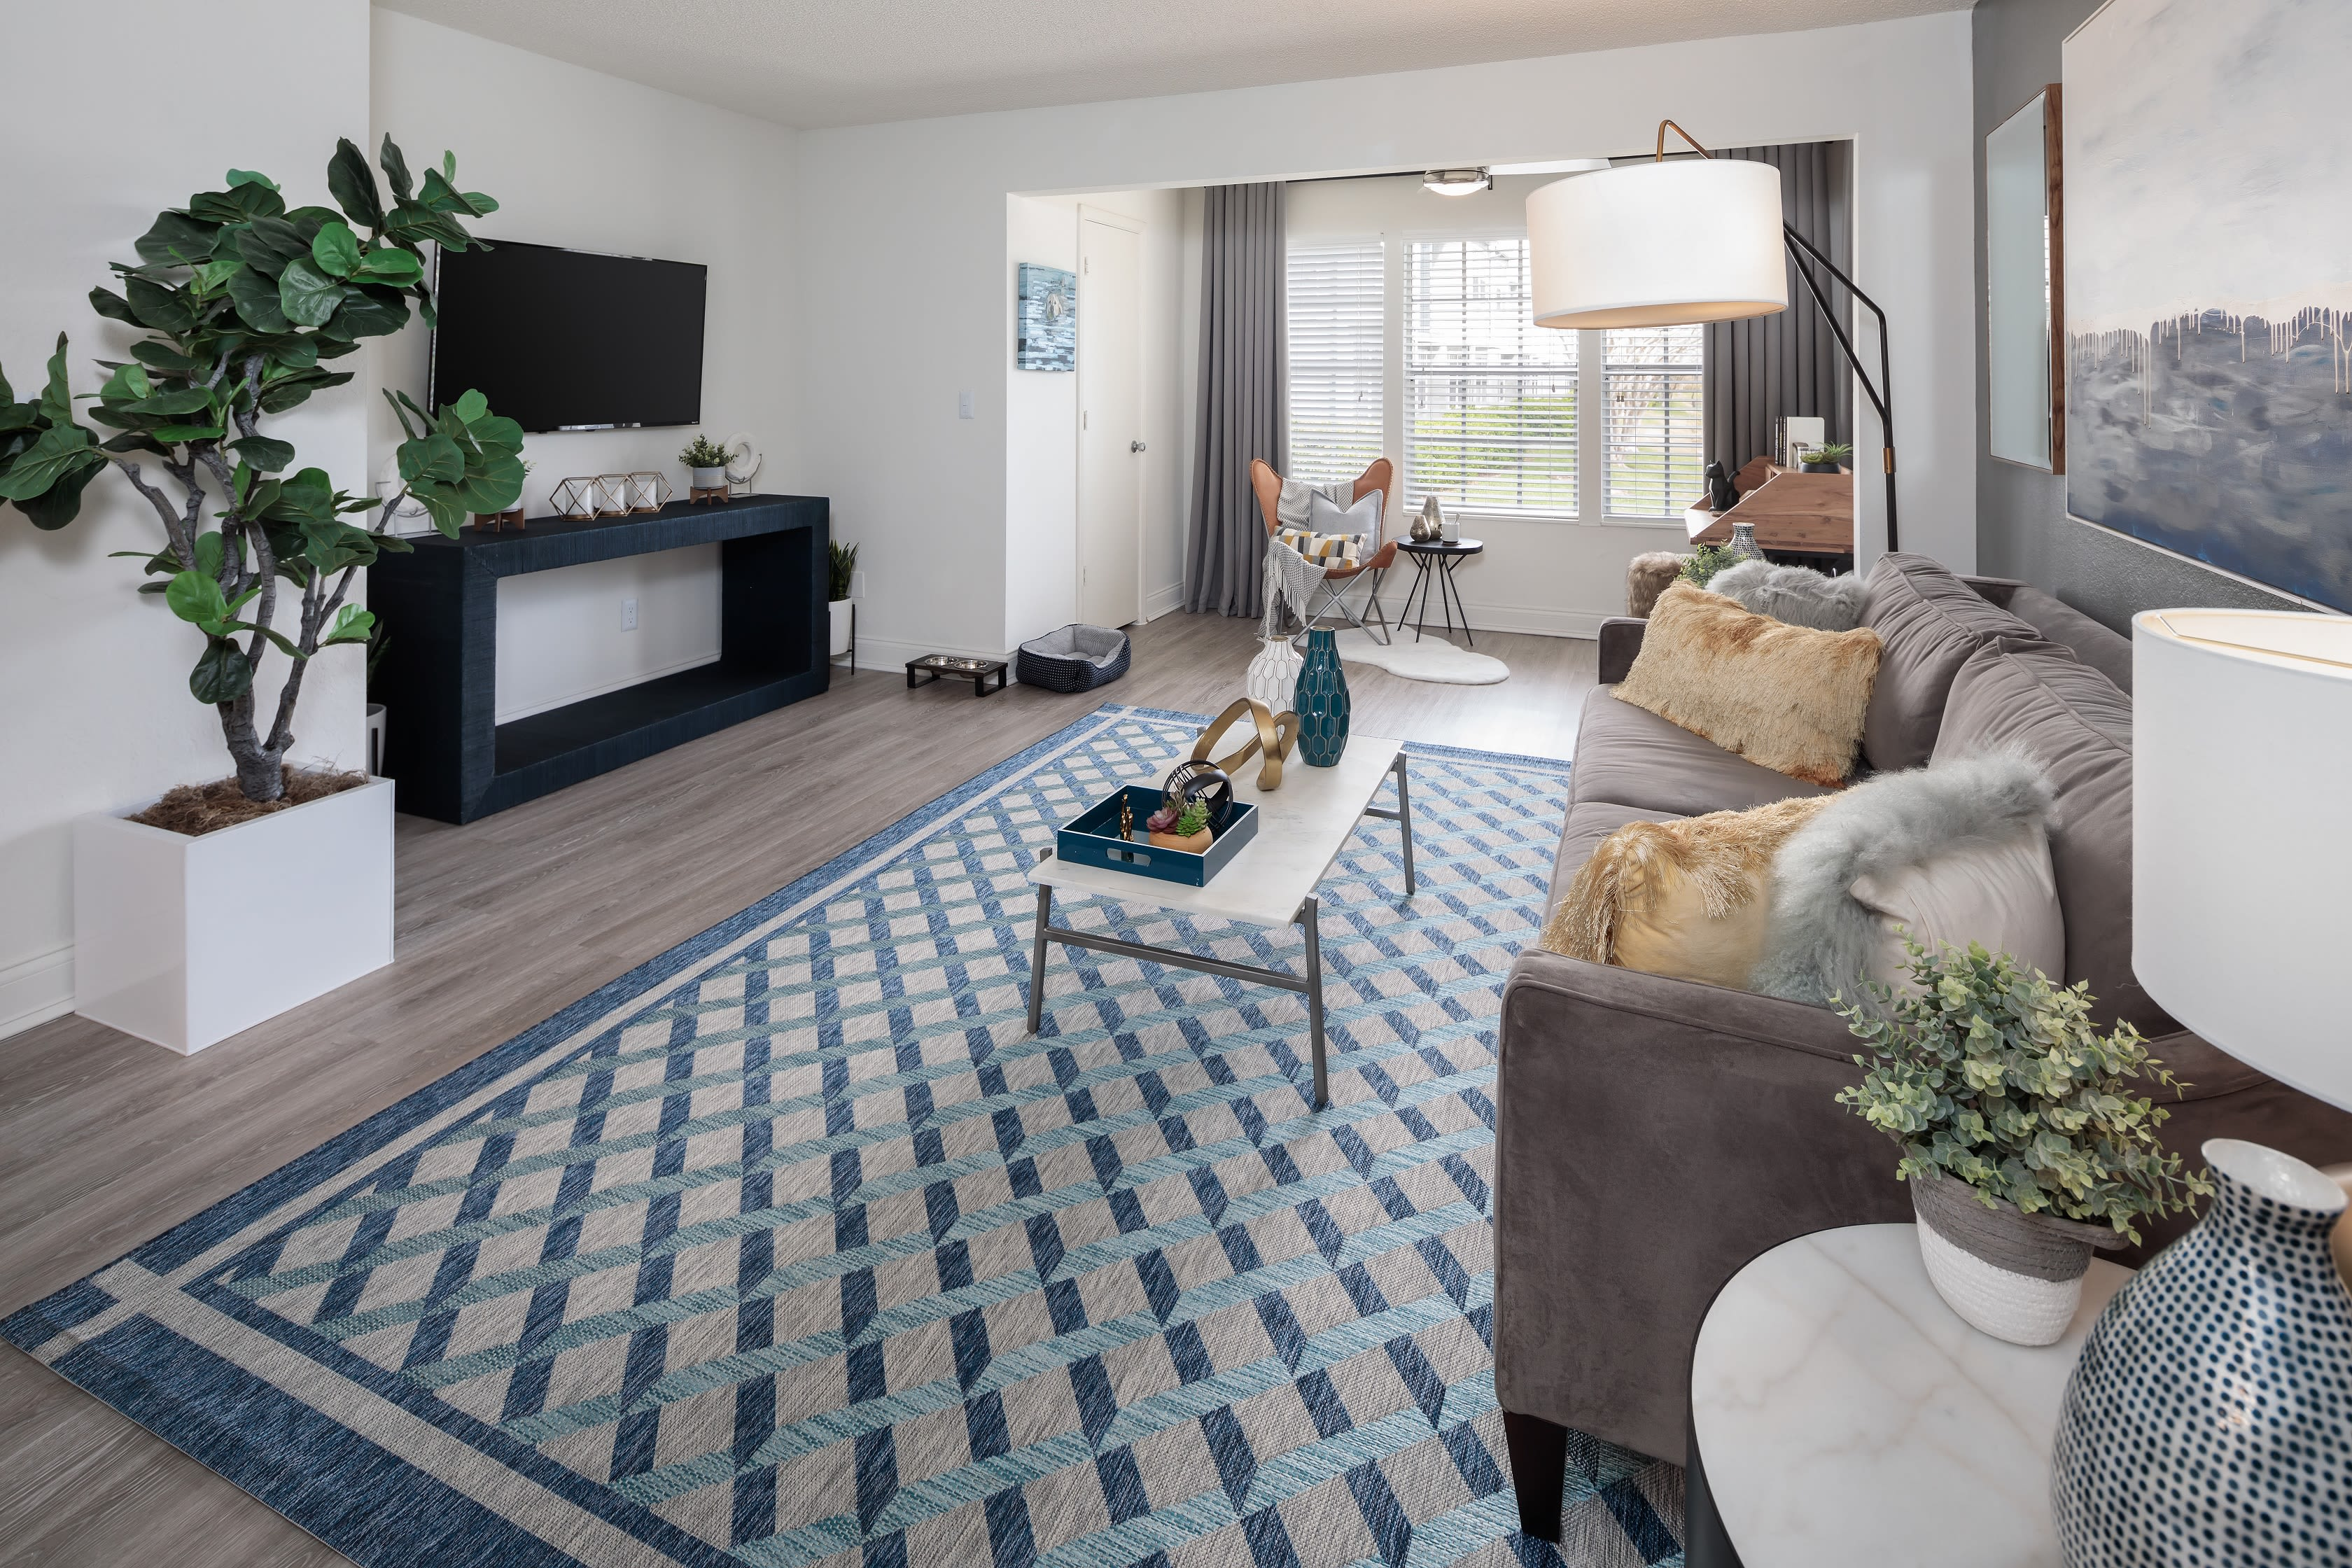 A furnished apartment living room at Fairways at Feather Sound in Clearwater, FL